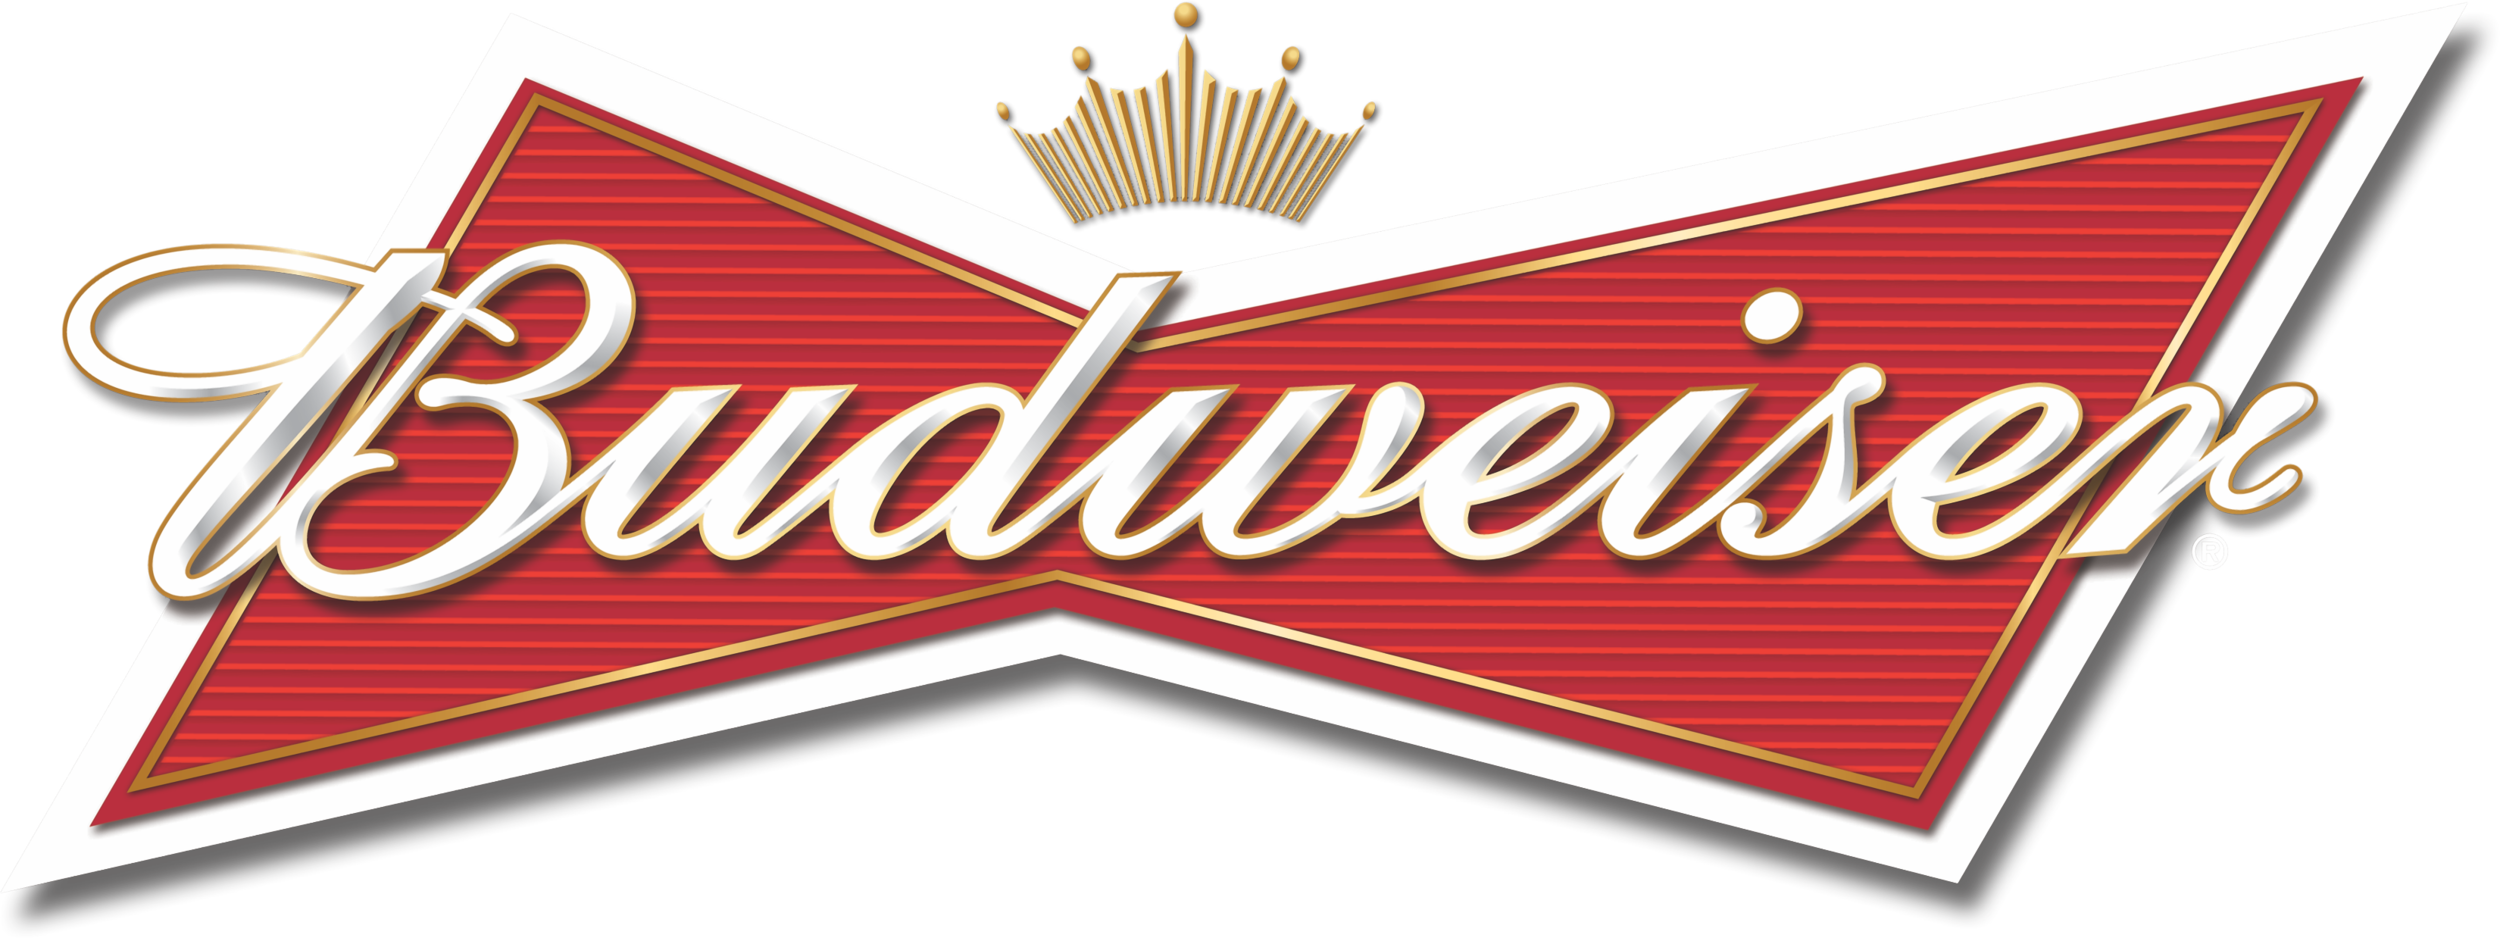 budweiser-alcohol-logo-png-2.png